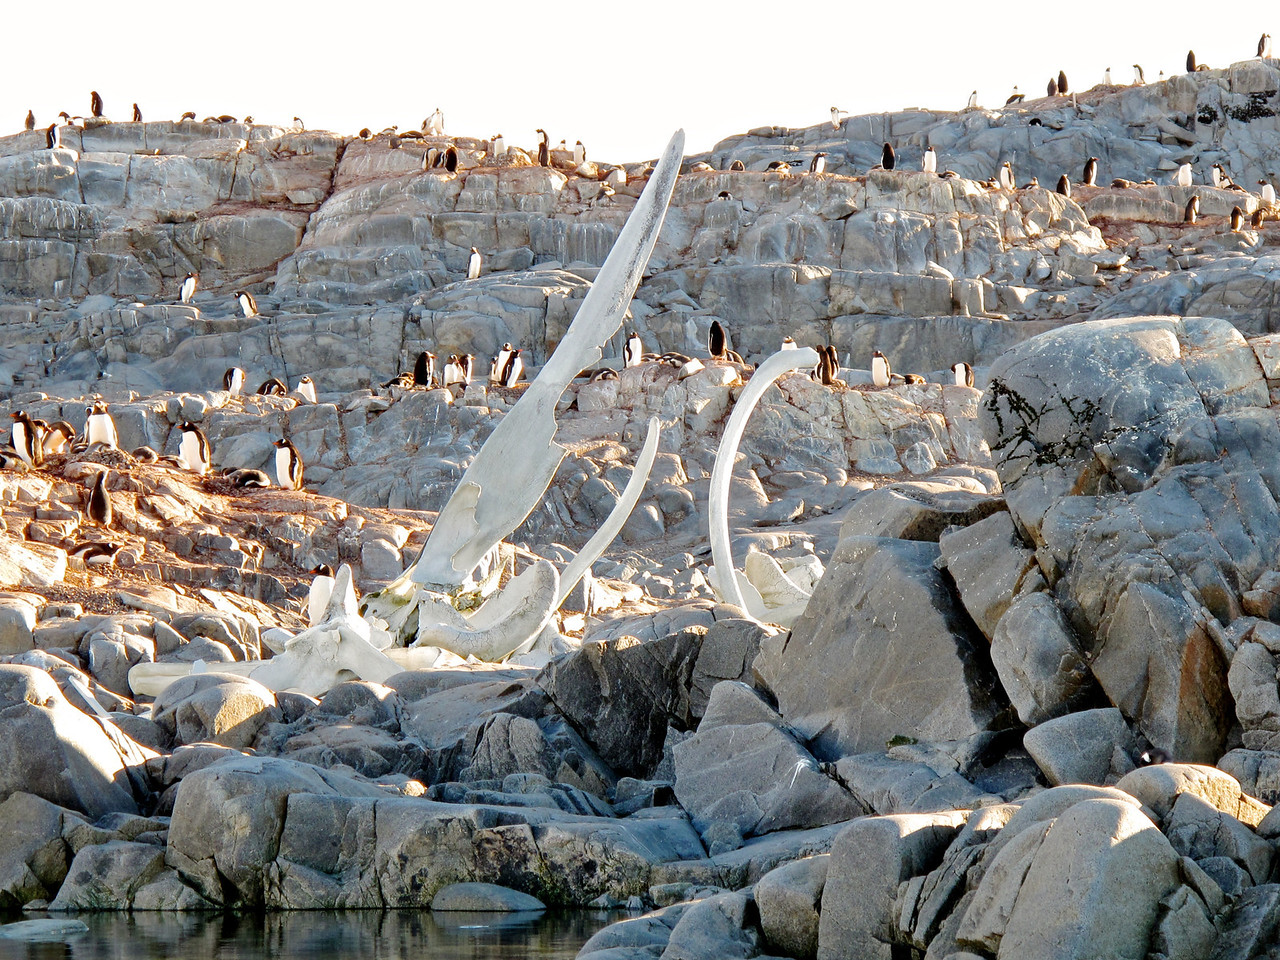 These whale bones are almost 100 years old and are remnants of whaling that ocurred in the area in the 1920s.  The whales that these bones are from were larger than present day whales.